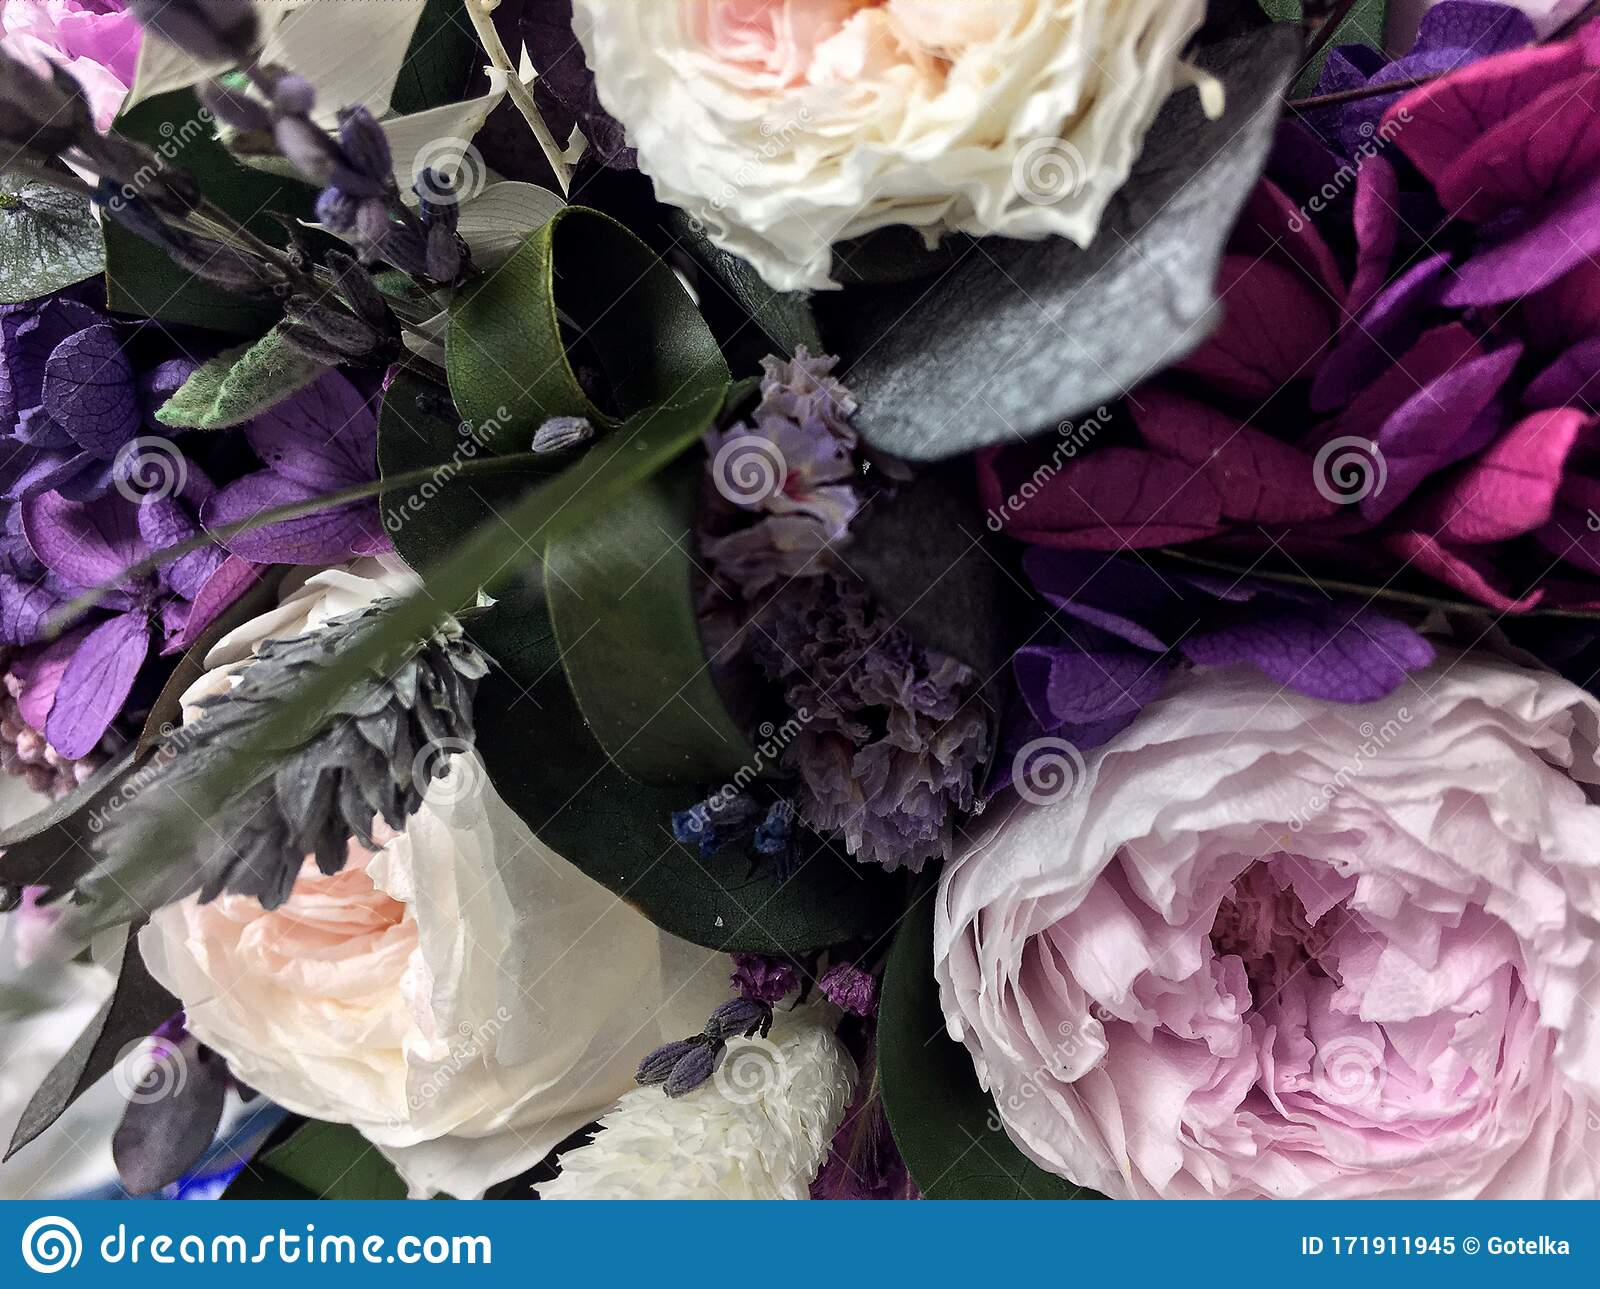 Beautiful Bouquet Of Preserved Flowers Hydrangea Eucalyptus Purple And White Peony Roses Dried Flowers Bouquet Of Spring Stock Image Image Of Flower Garden 171911945